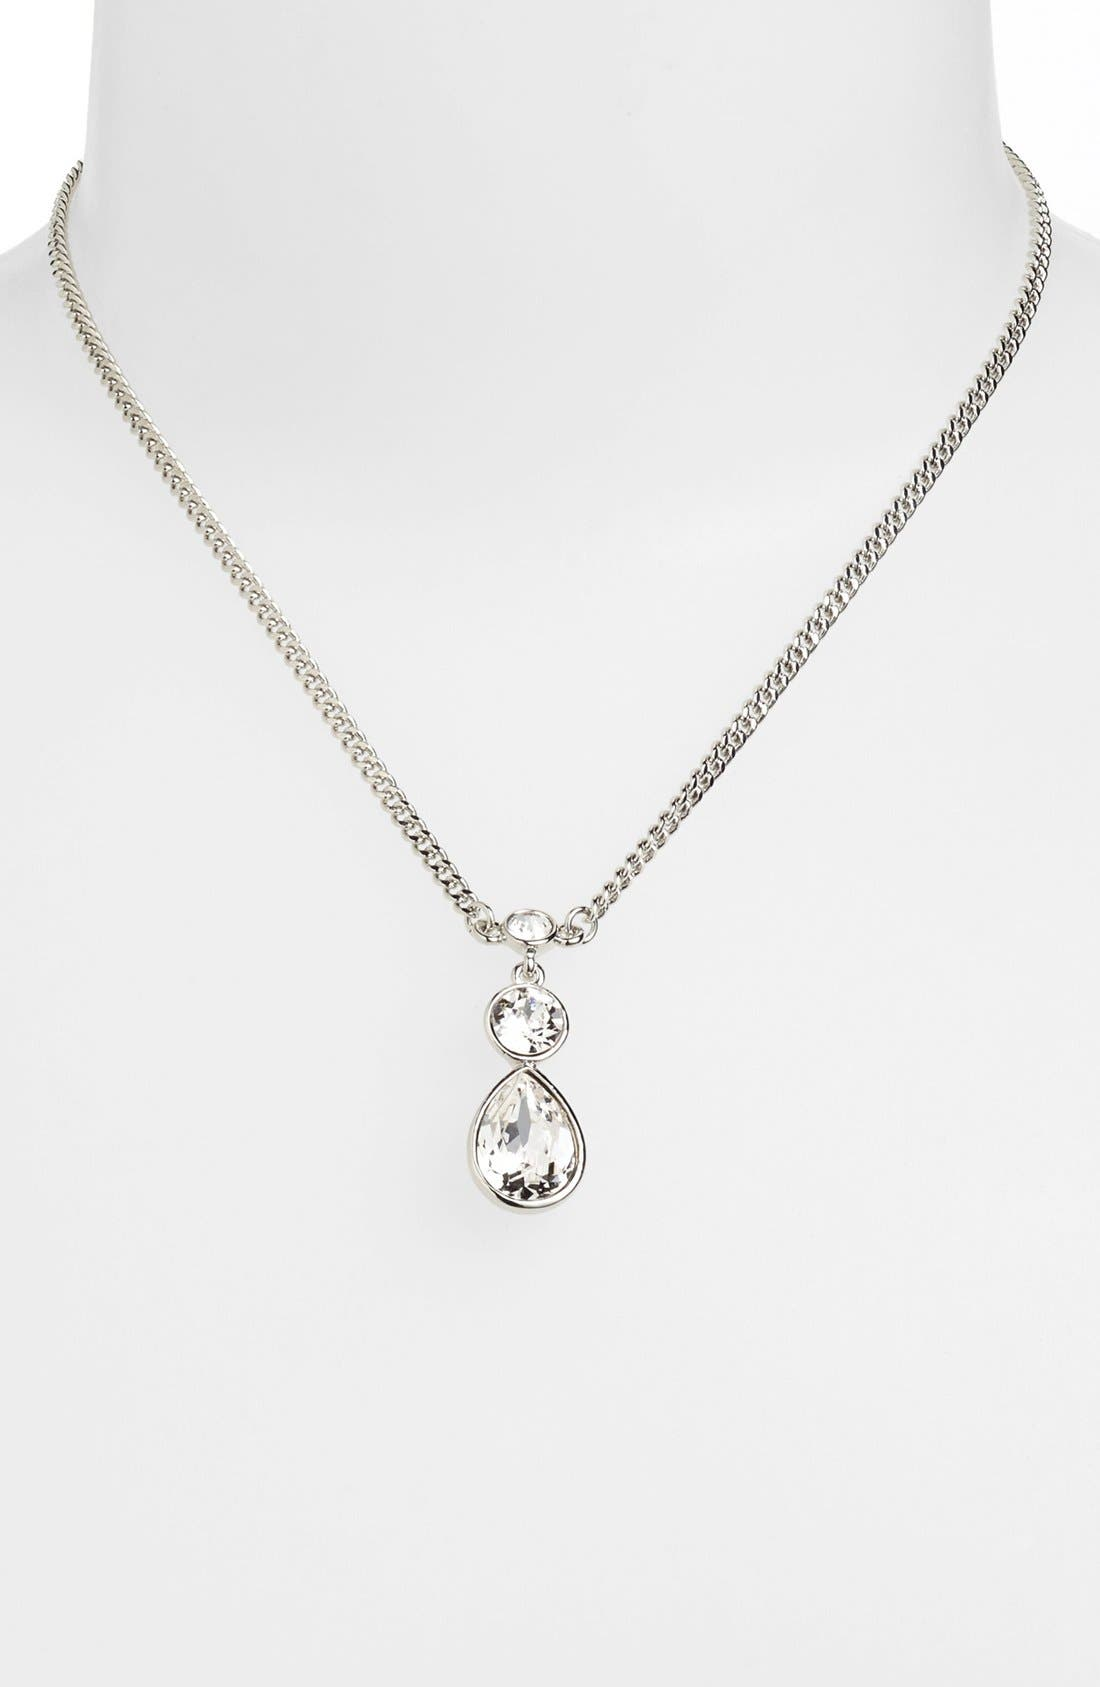 Alternate Image 1 Selected - Givenchy Crystal Pendant Necklace (Nordstrom Exclusive)